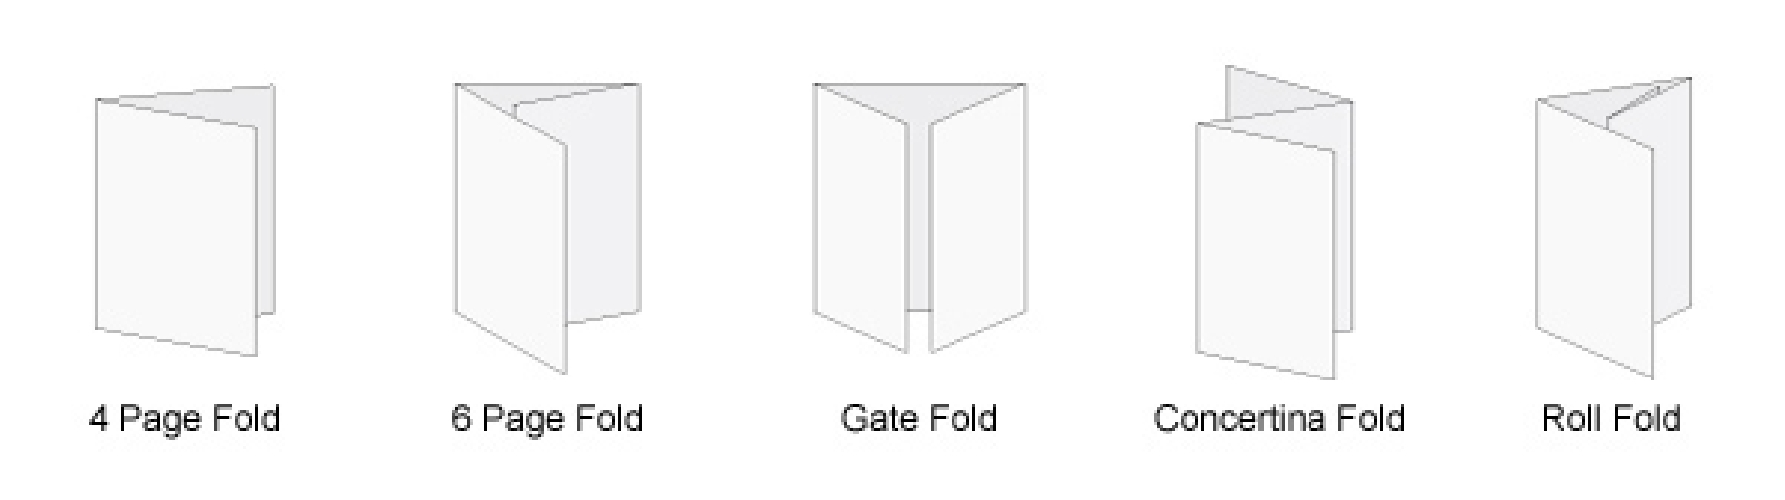 Image for Folding types